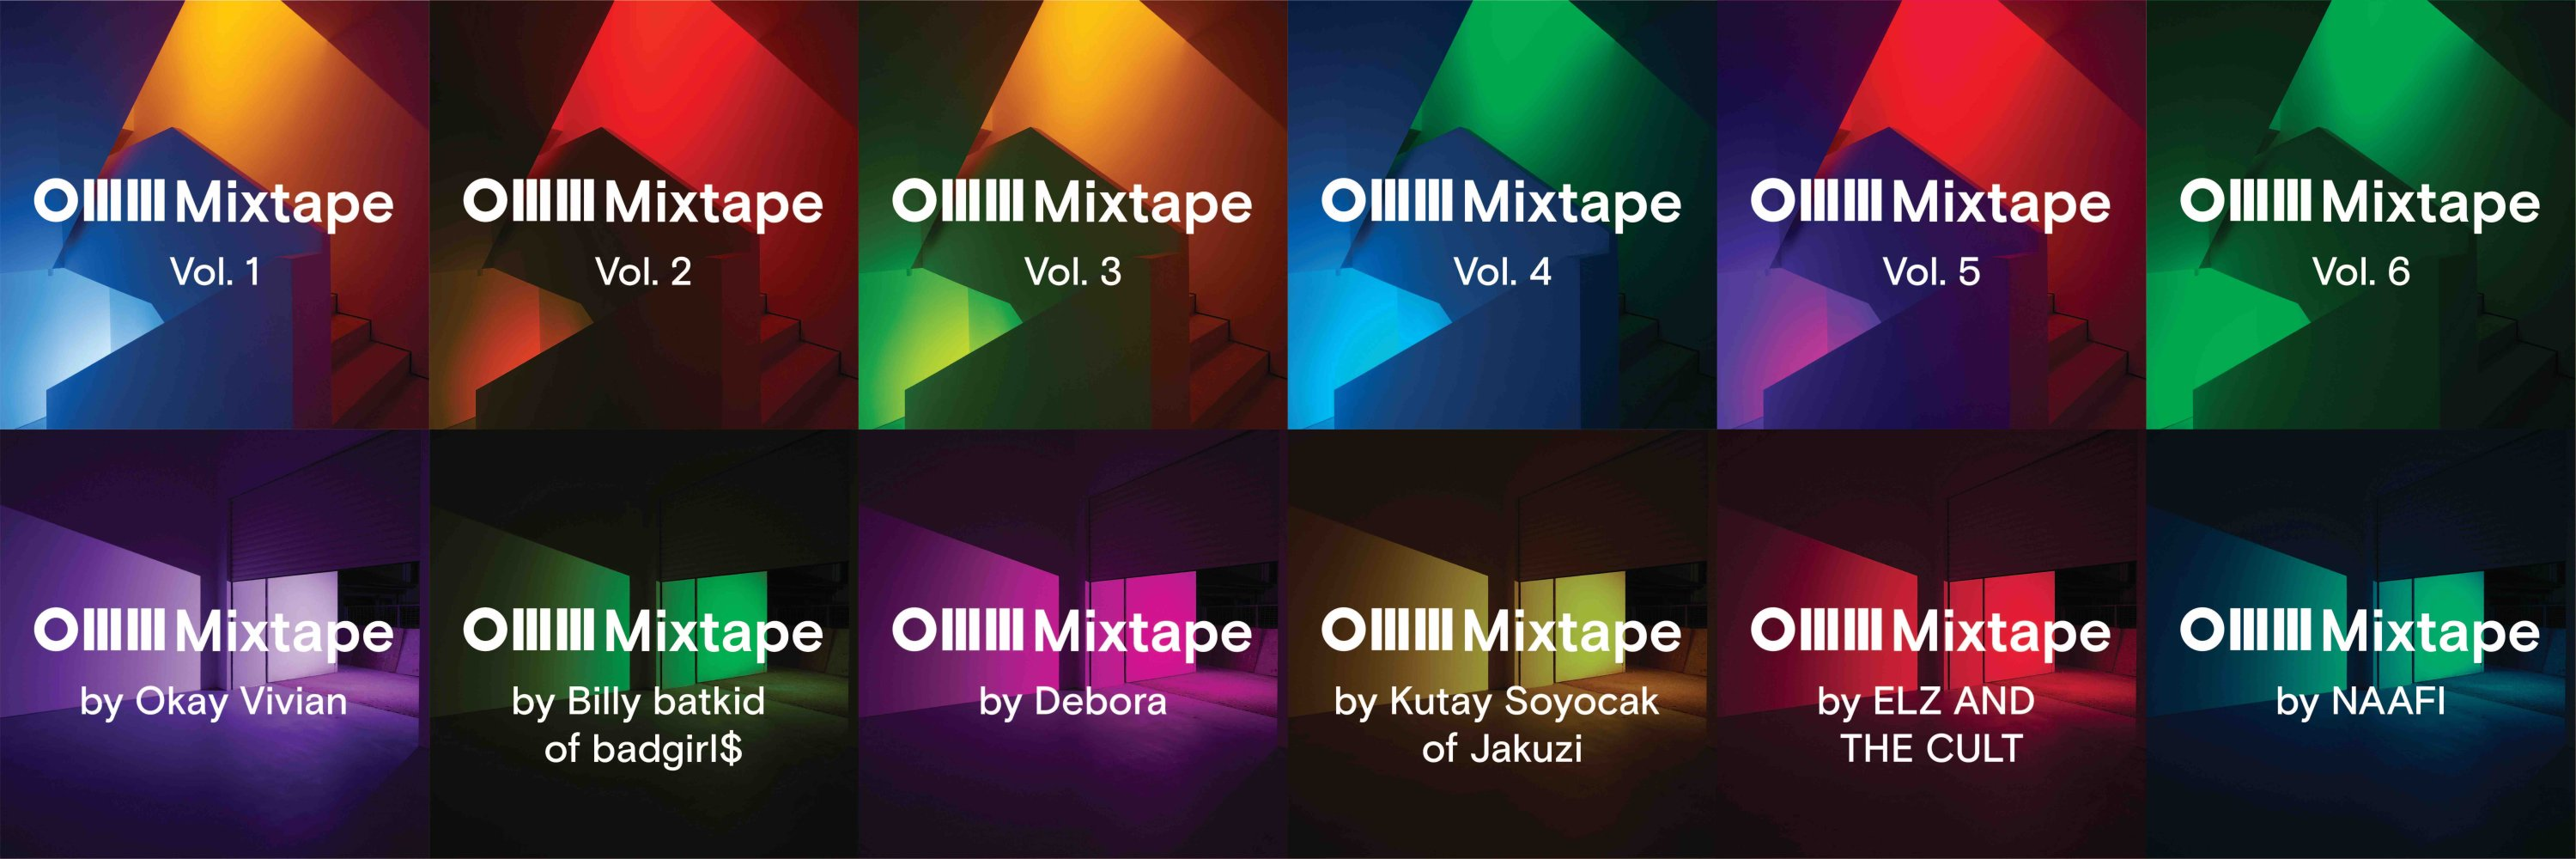 The playlists compiled by the museum team are available on OMM Mixtapes Spotify.